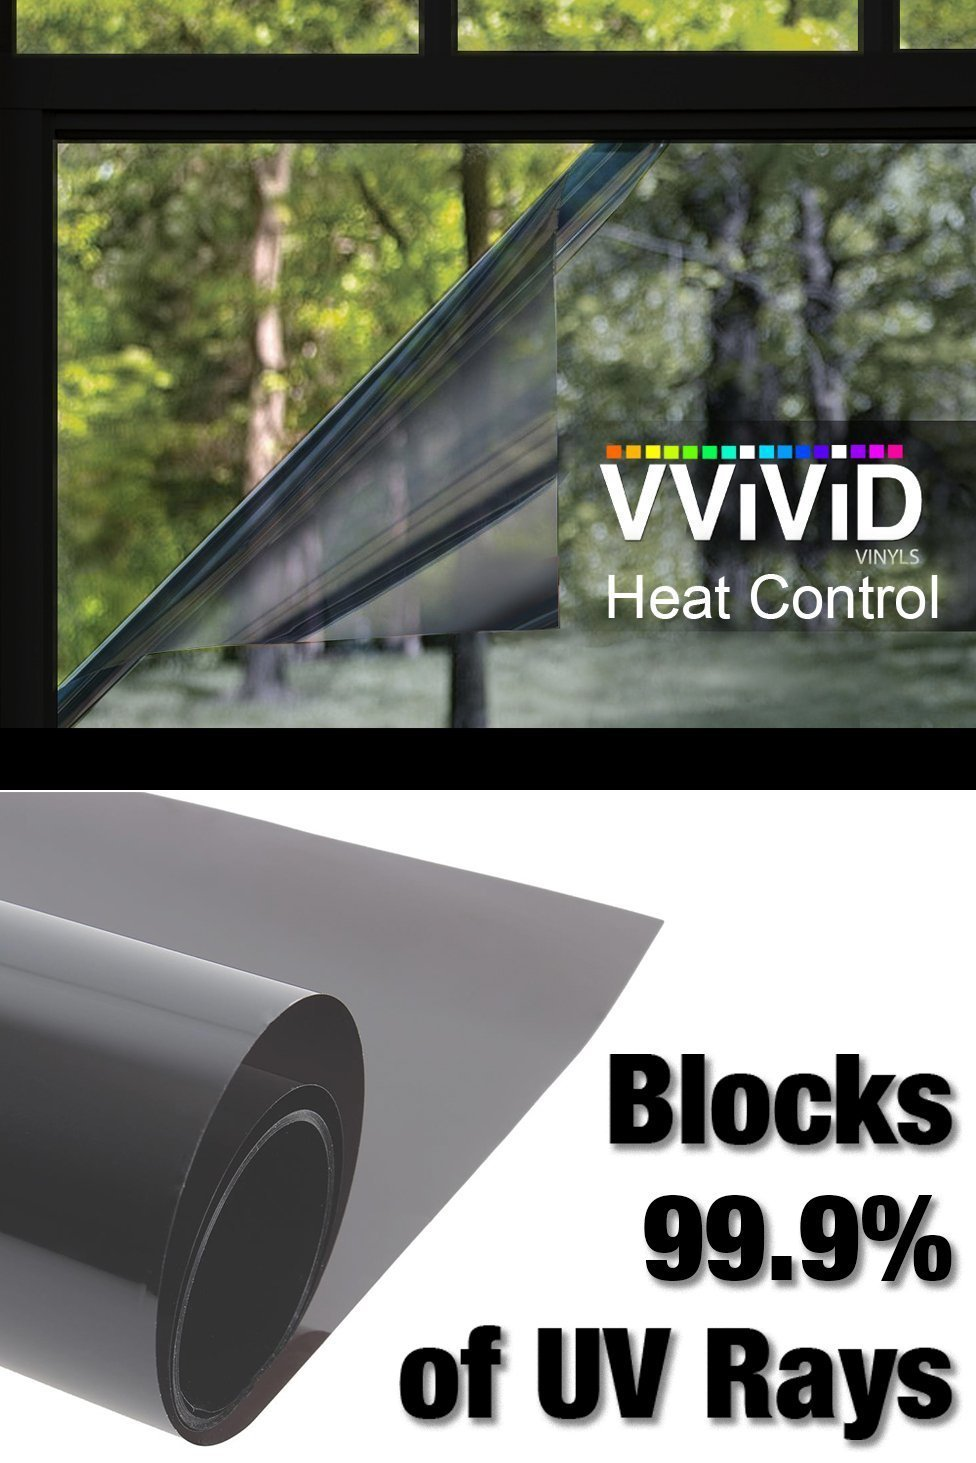 Heat Control 99% Anti UV Residential Vinyl Wrap 6.5ft x 60'Large Window Dark Shade Tint Roll Home Office Climate Control VViViD